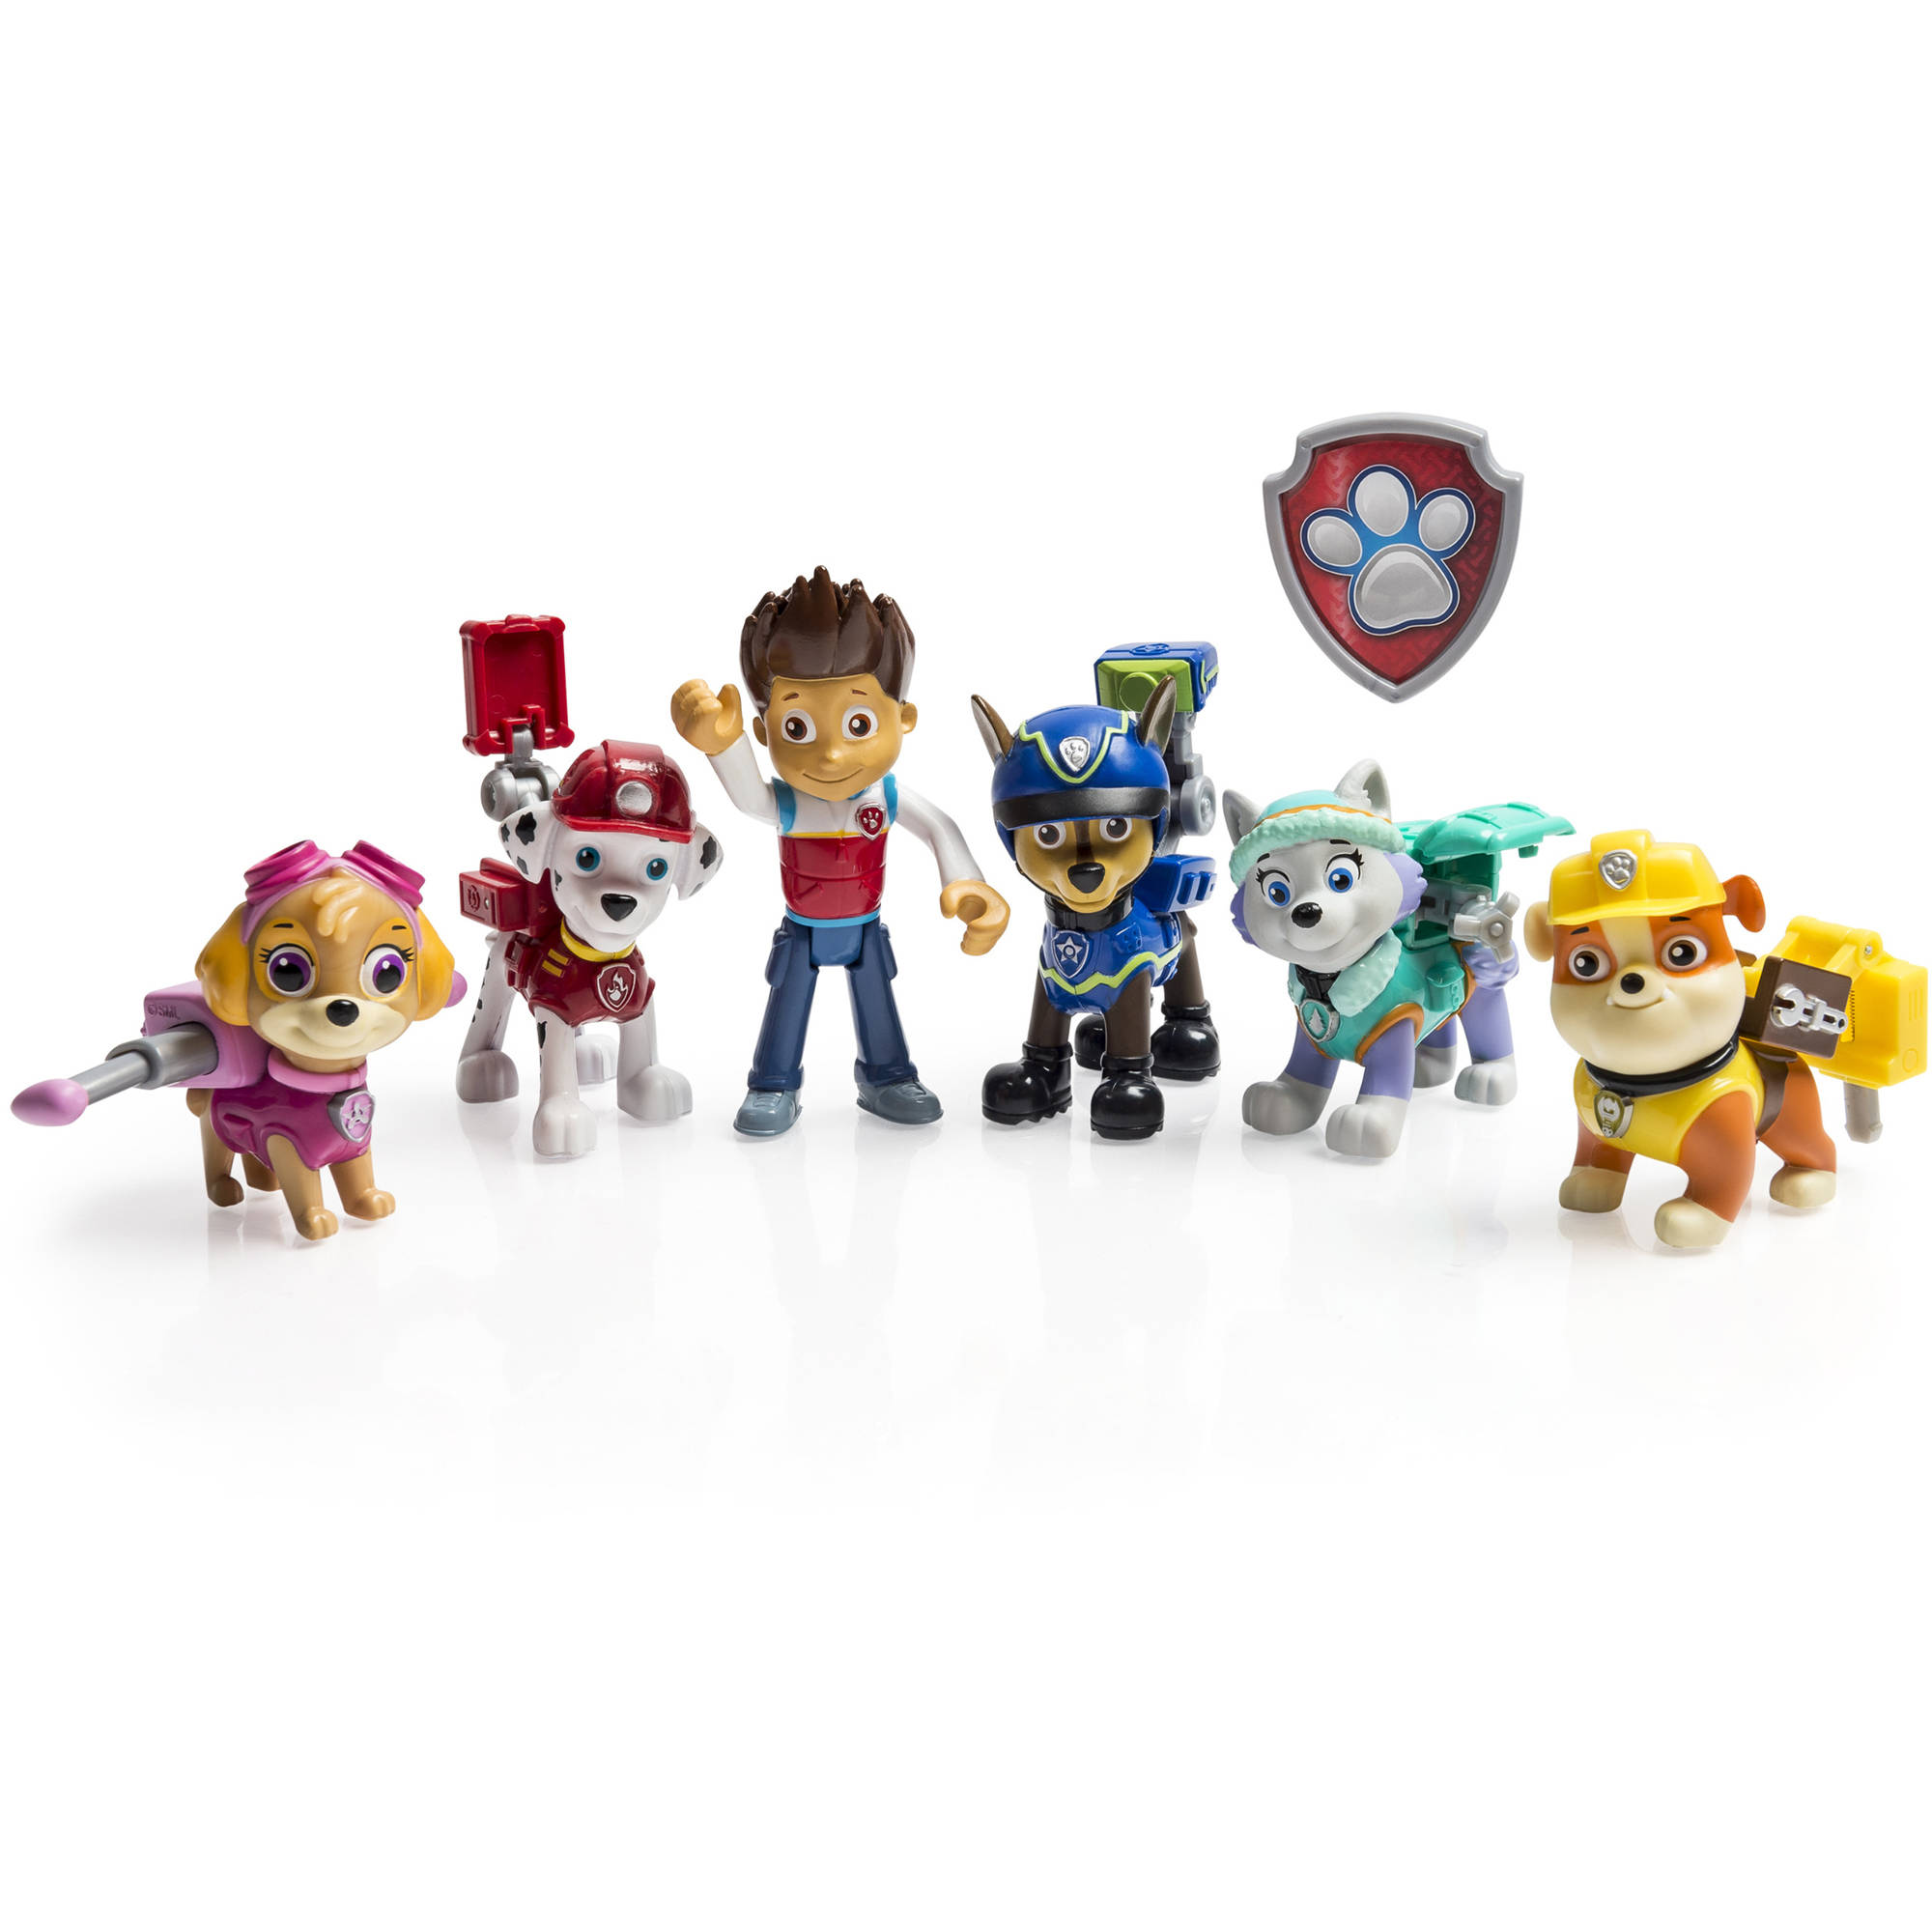 Paw Patrol, Action Pup 6 Pack Walmart Exclusive